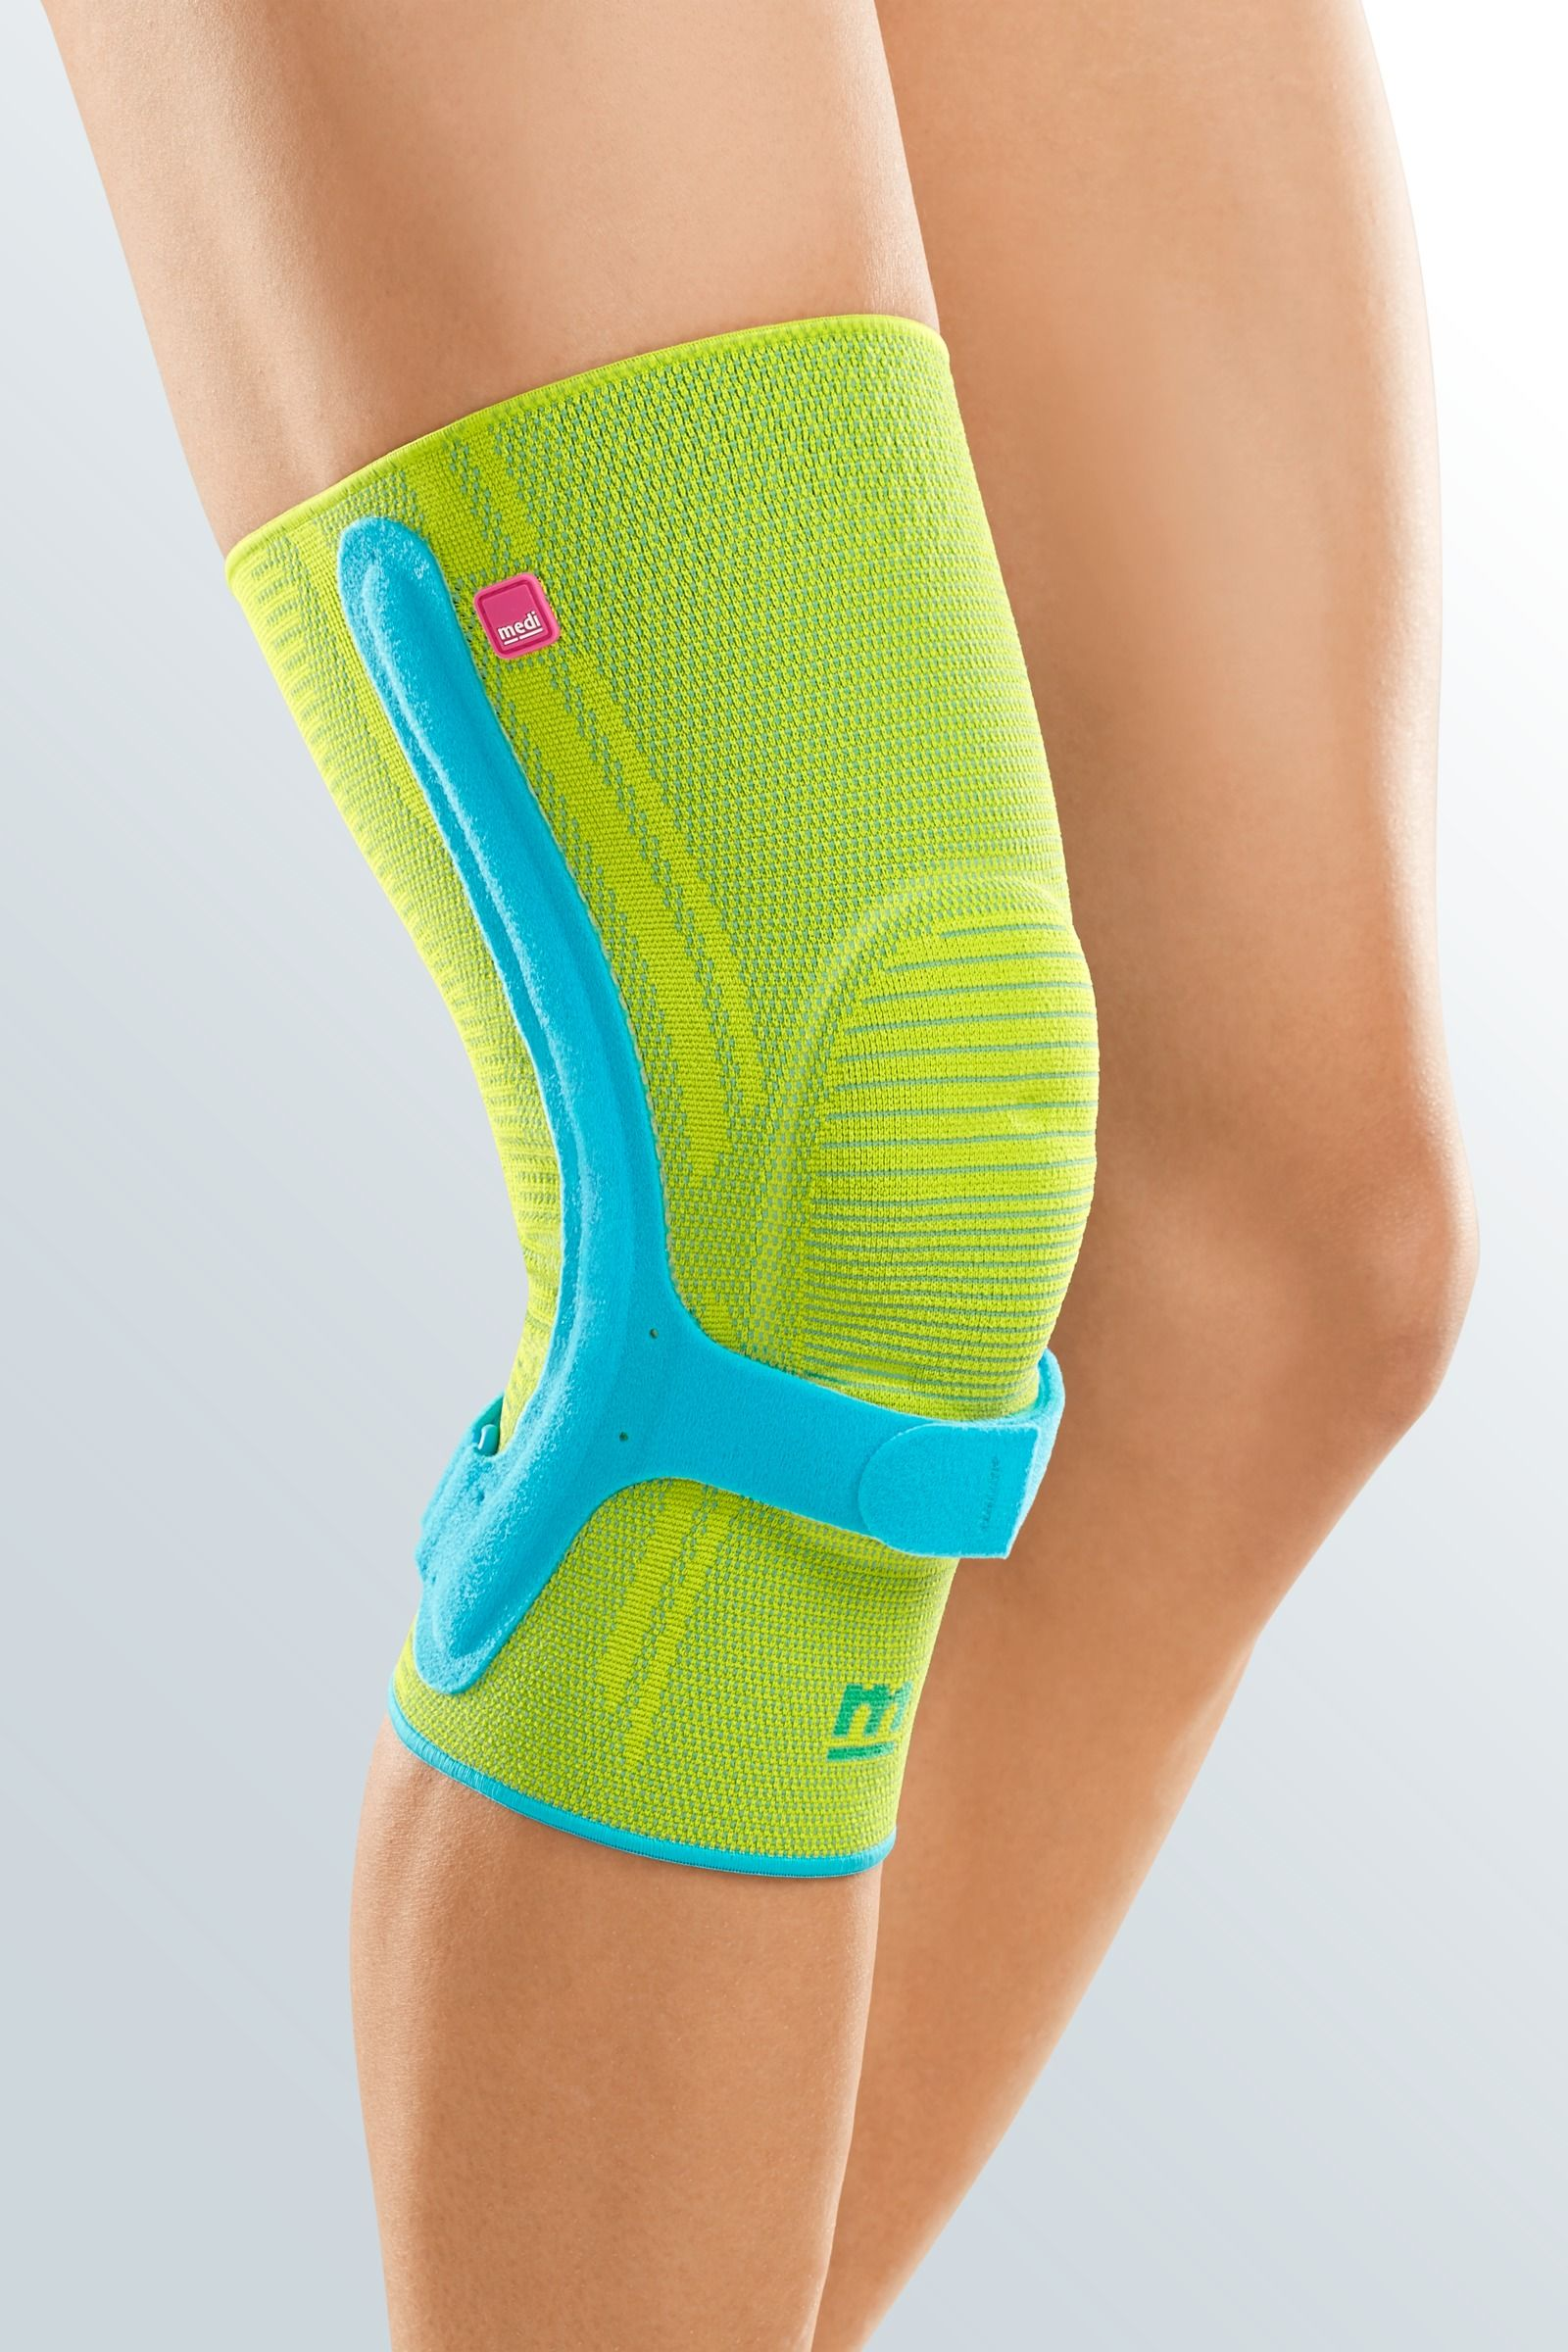 091f22b4d2 Genumedi PSS knee support from medi - Genumedi PSS knee support from medi